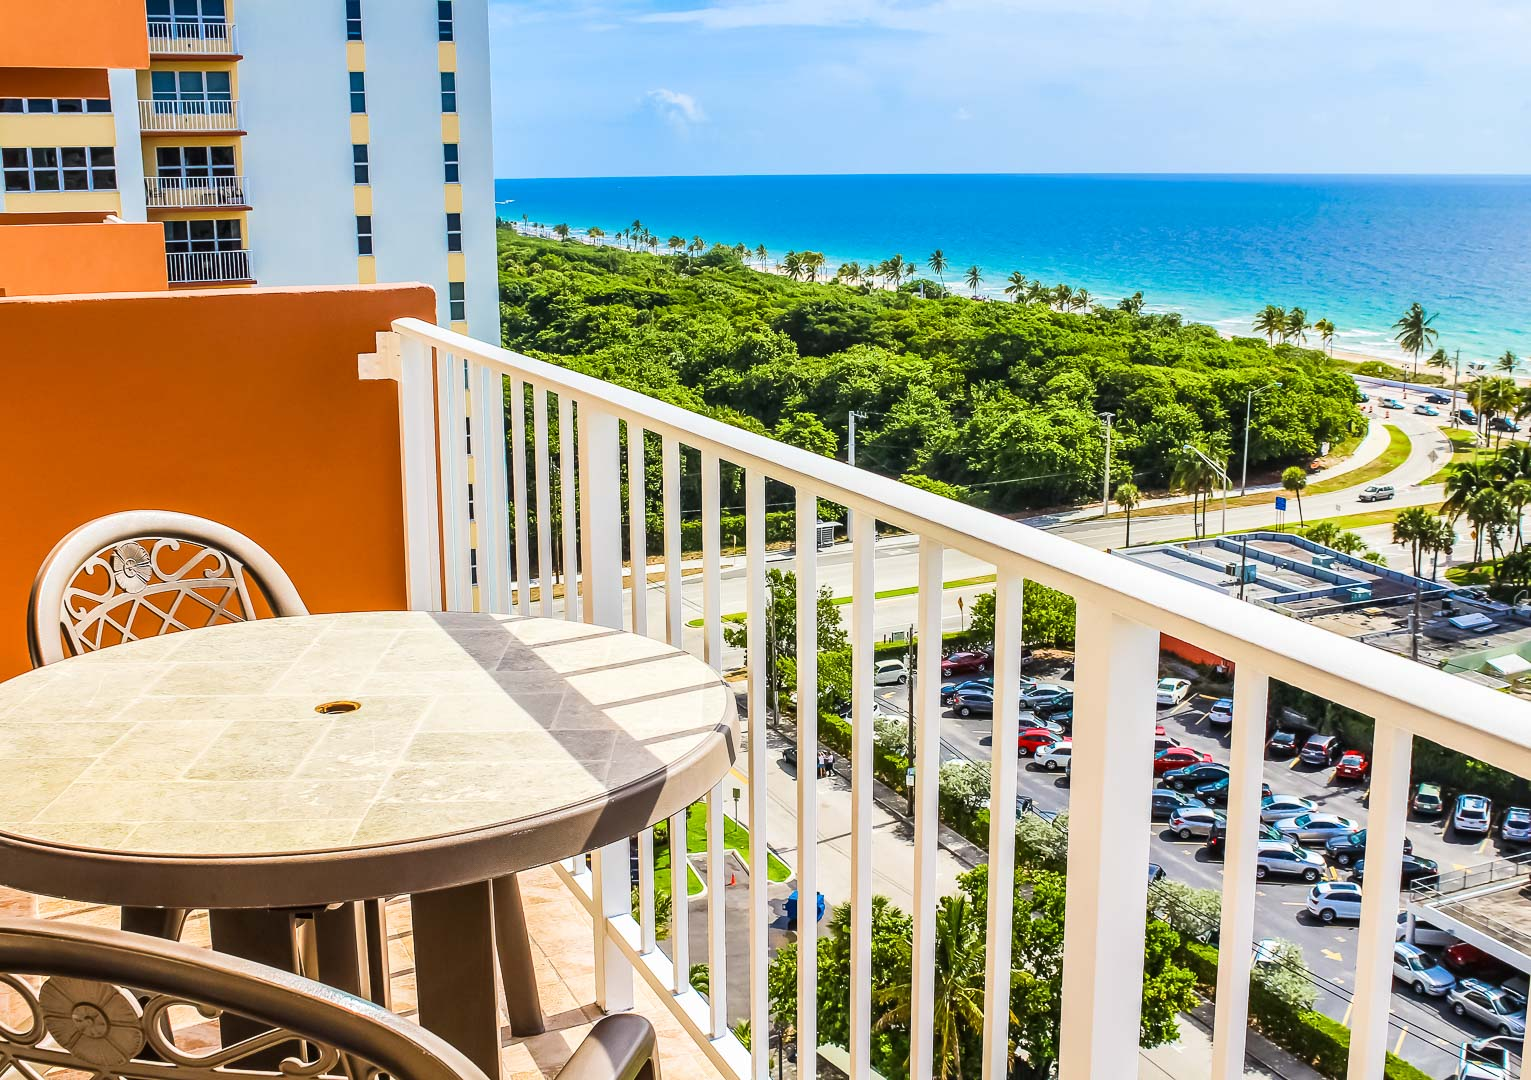 A balcony view to the beach at VRI's Ft. Lauderdale Beach Resort in Florida.